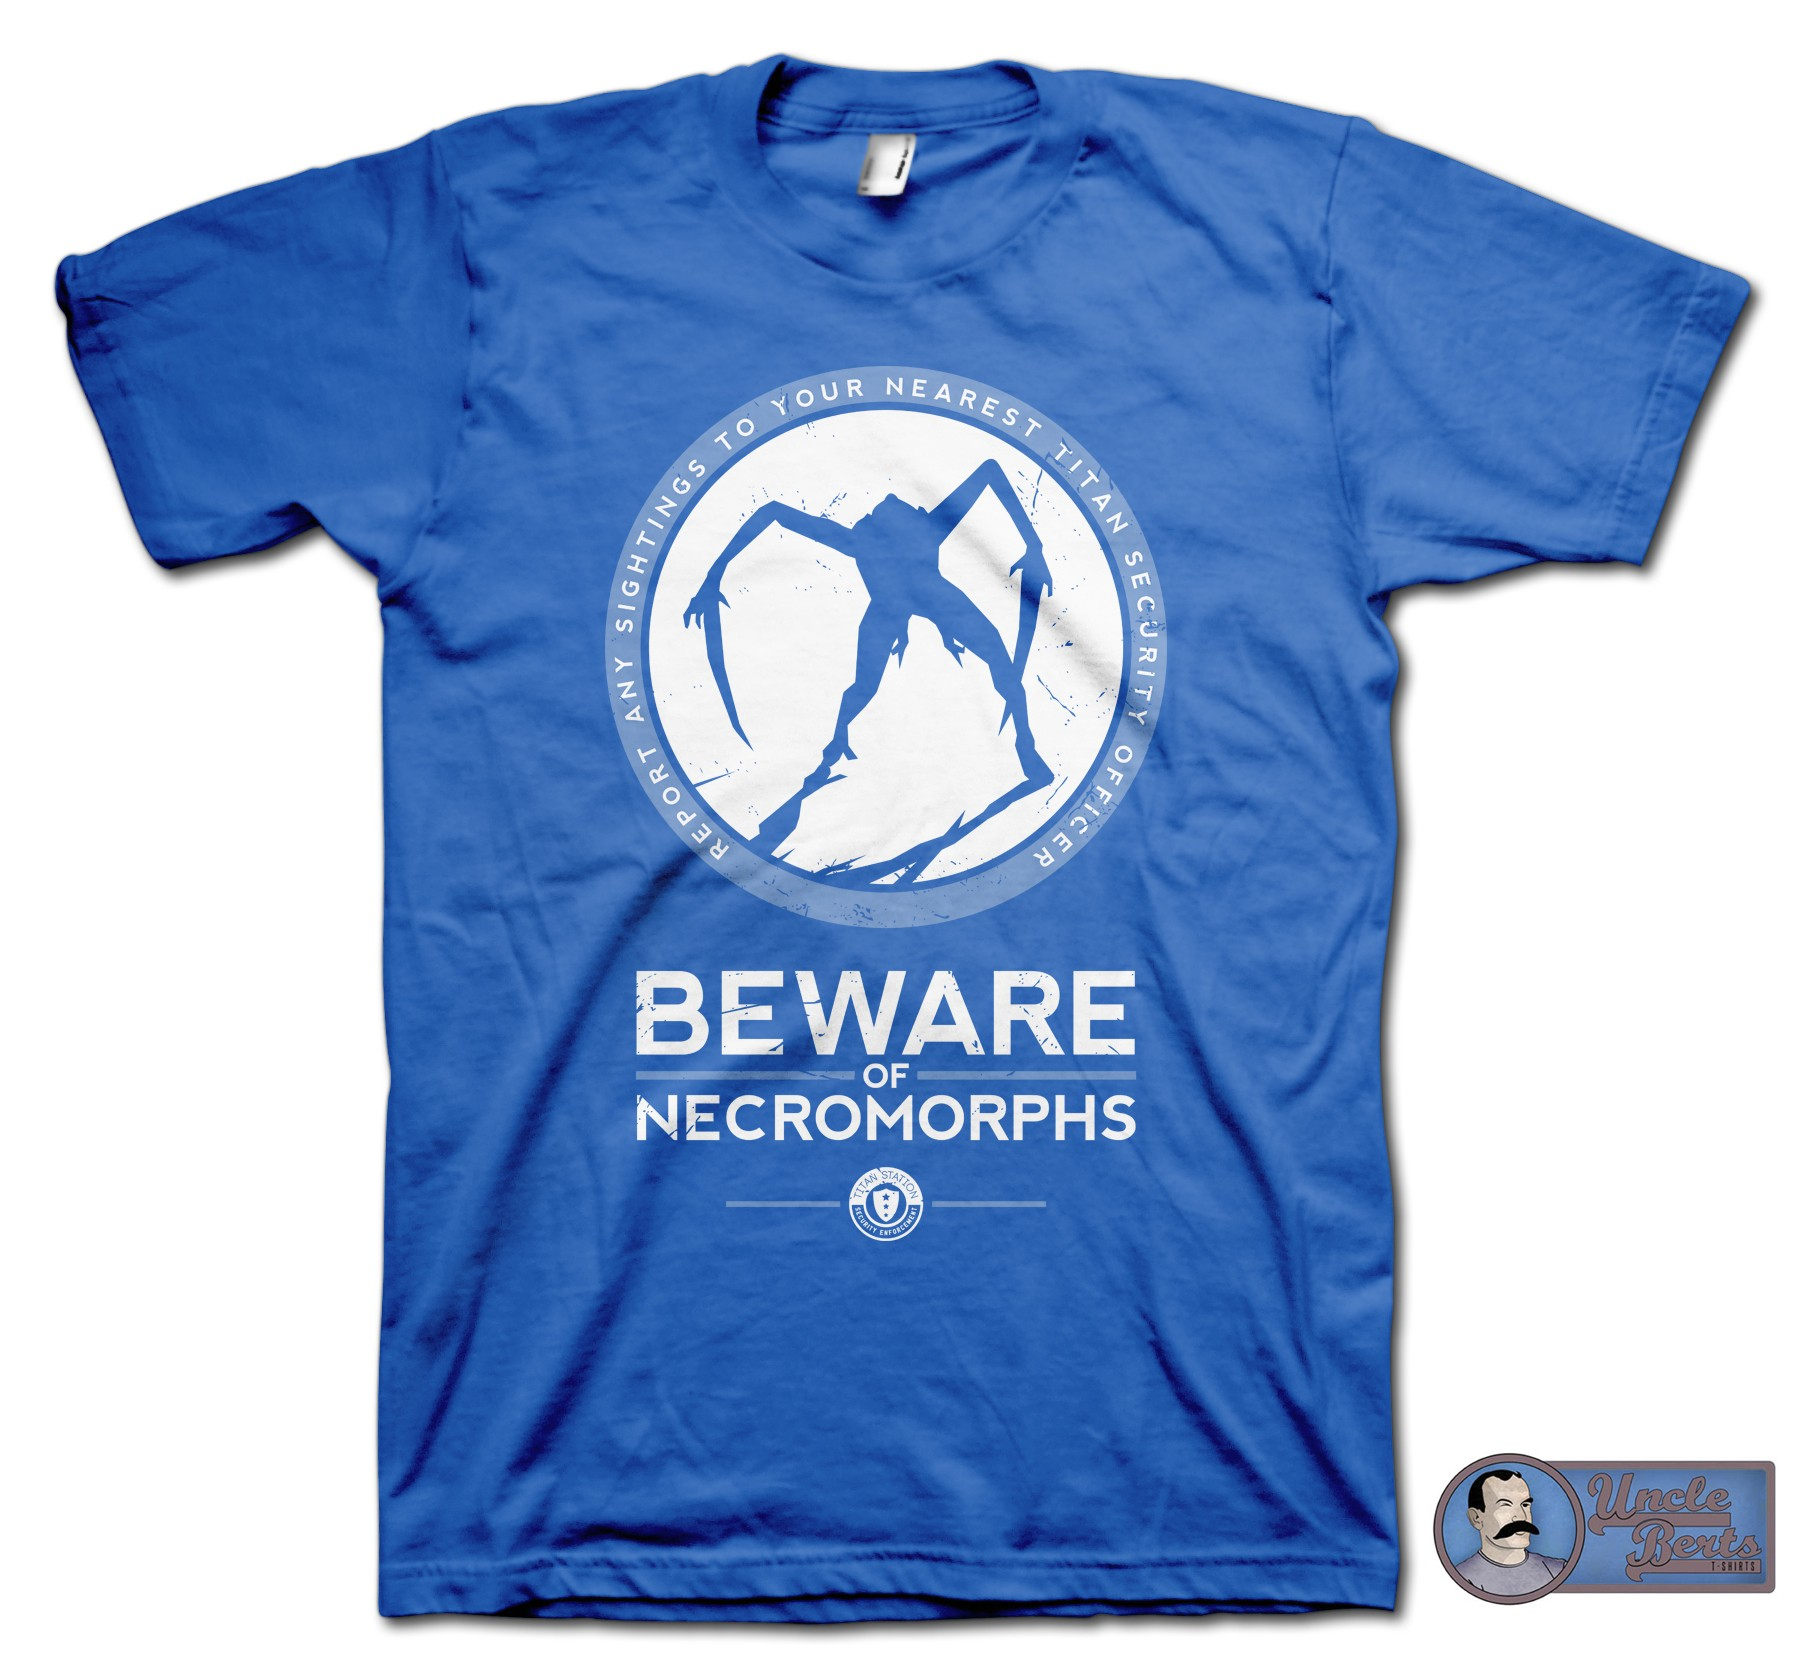 Beware of Necromorphs inspired by the Dead Space series T-Shirt